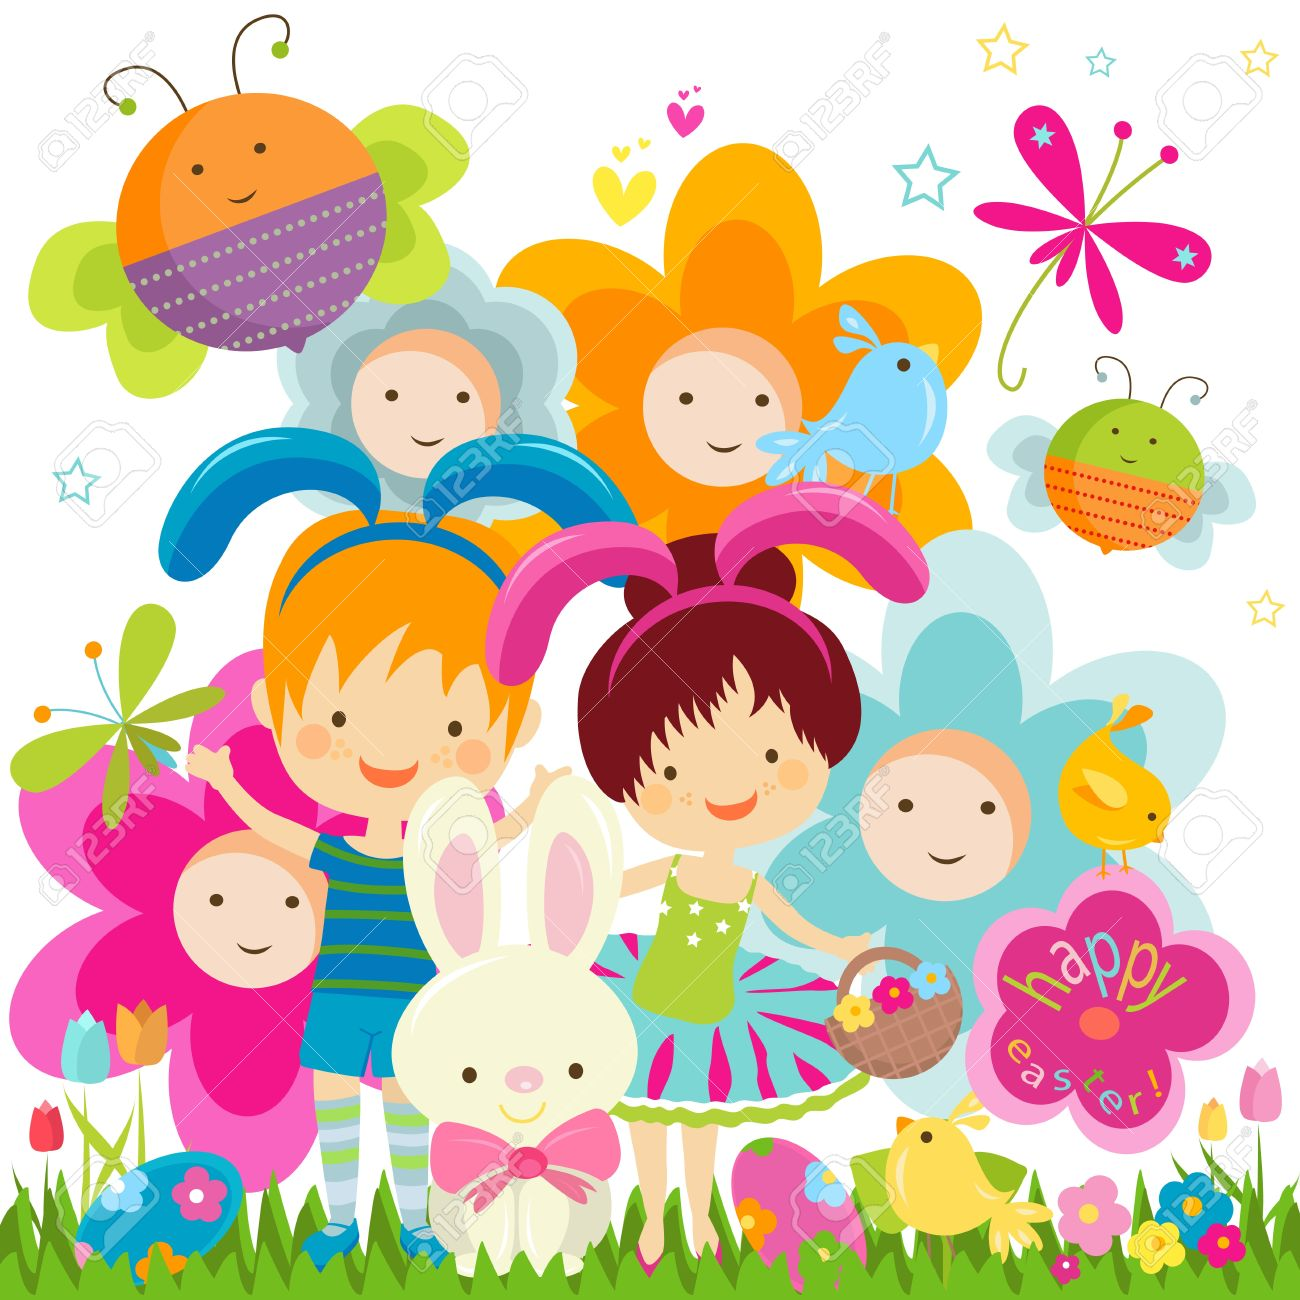 easter background with happy bees and flowers royalty free